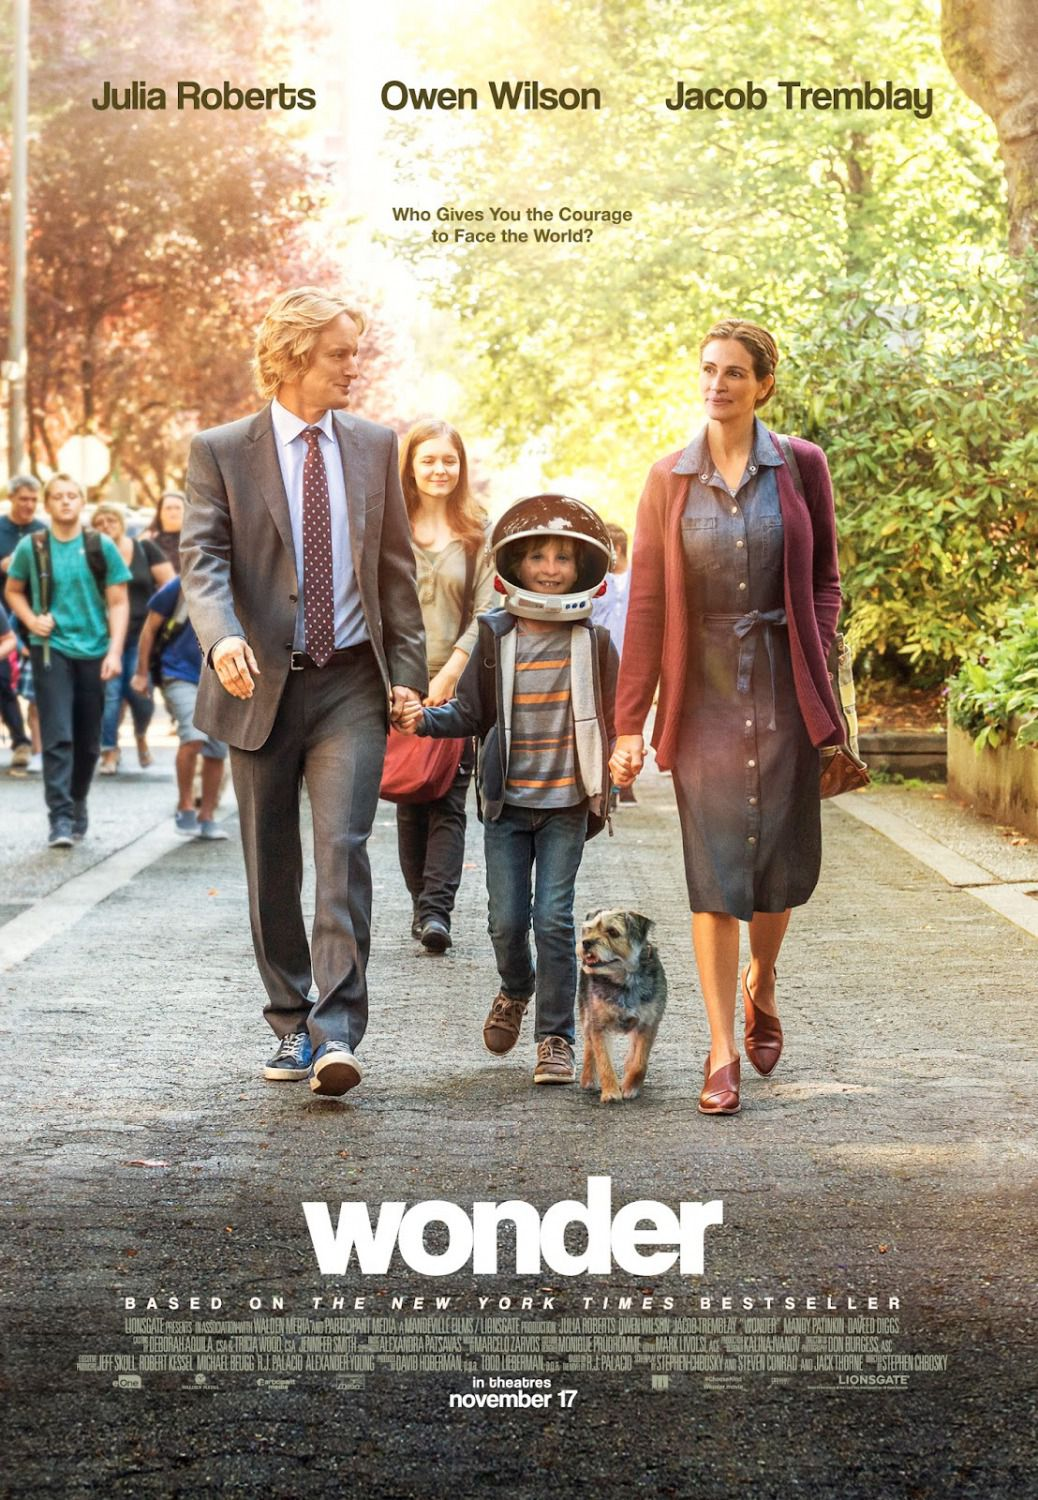 Wonder - Who gives you the courage to face the world - by Stephen Chbosky - Jacob Tremblay, Julia Roberts, Owen Wilson, Daveed Diggs